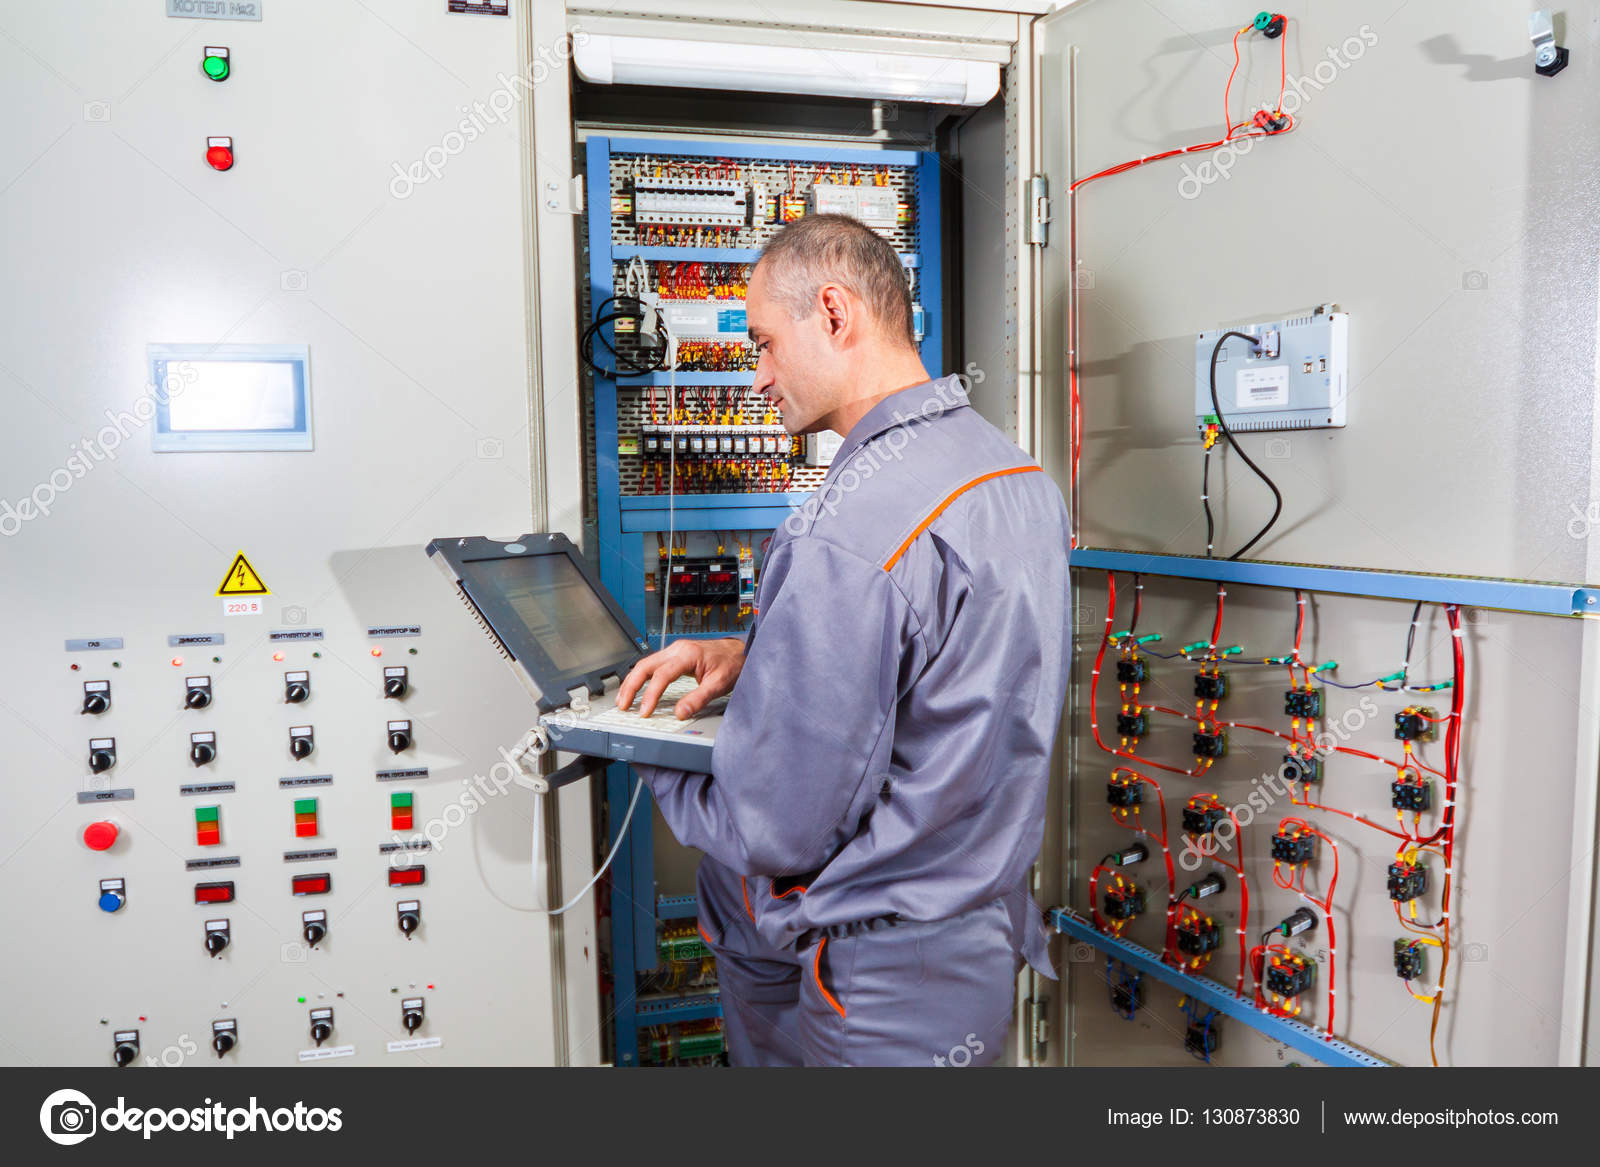 electrician testing industrial machine, electrician builder engineer  screwing equipment in fuse box, male electrician